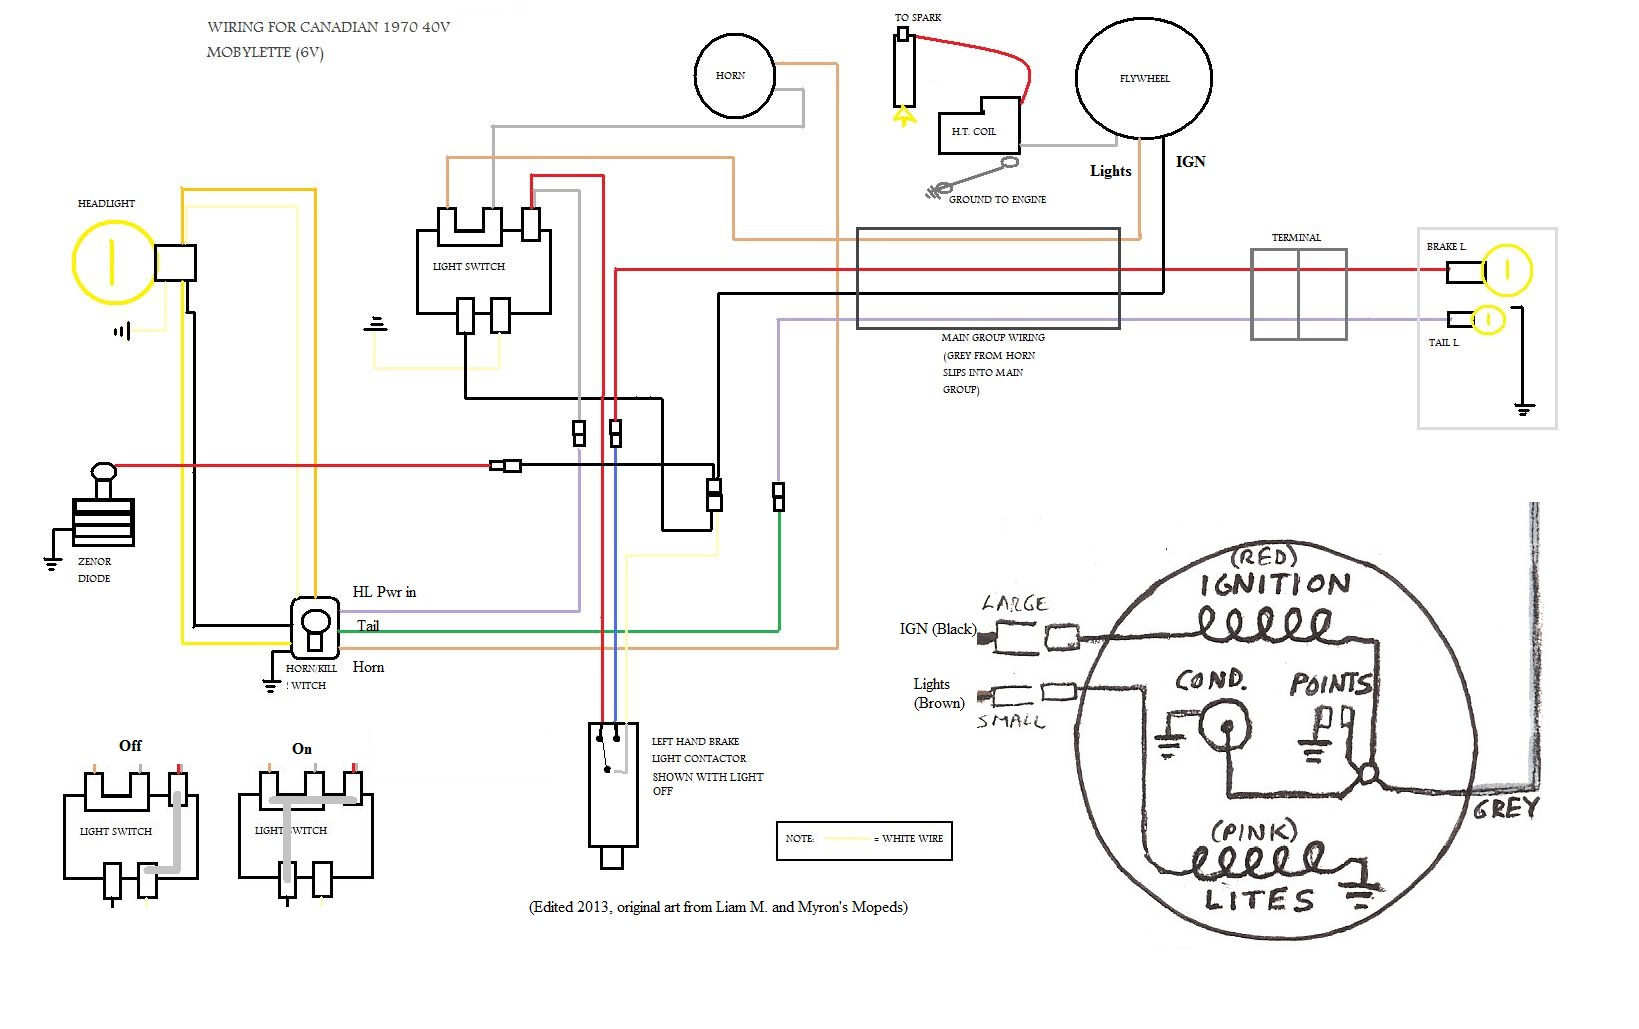 canadian mobylette wiring - moped wiki house electrical wiring diagram canada